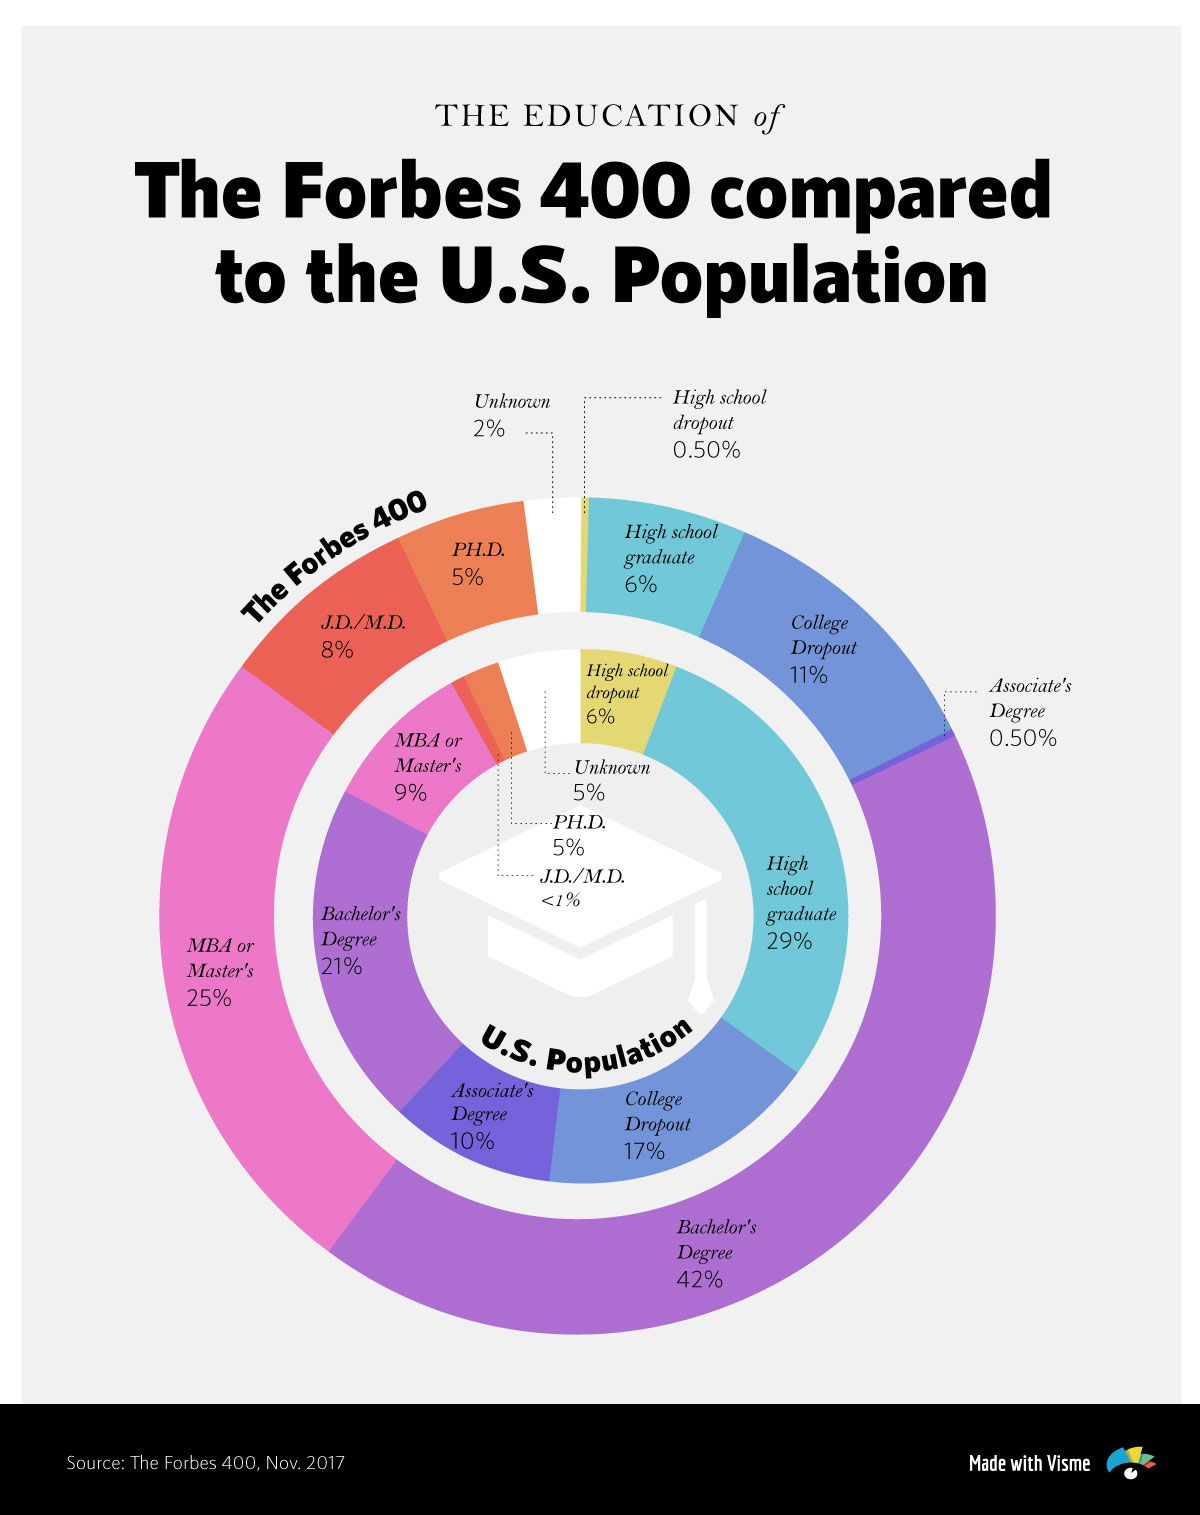 education of forbes-400-compared-with-us-population